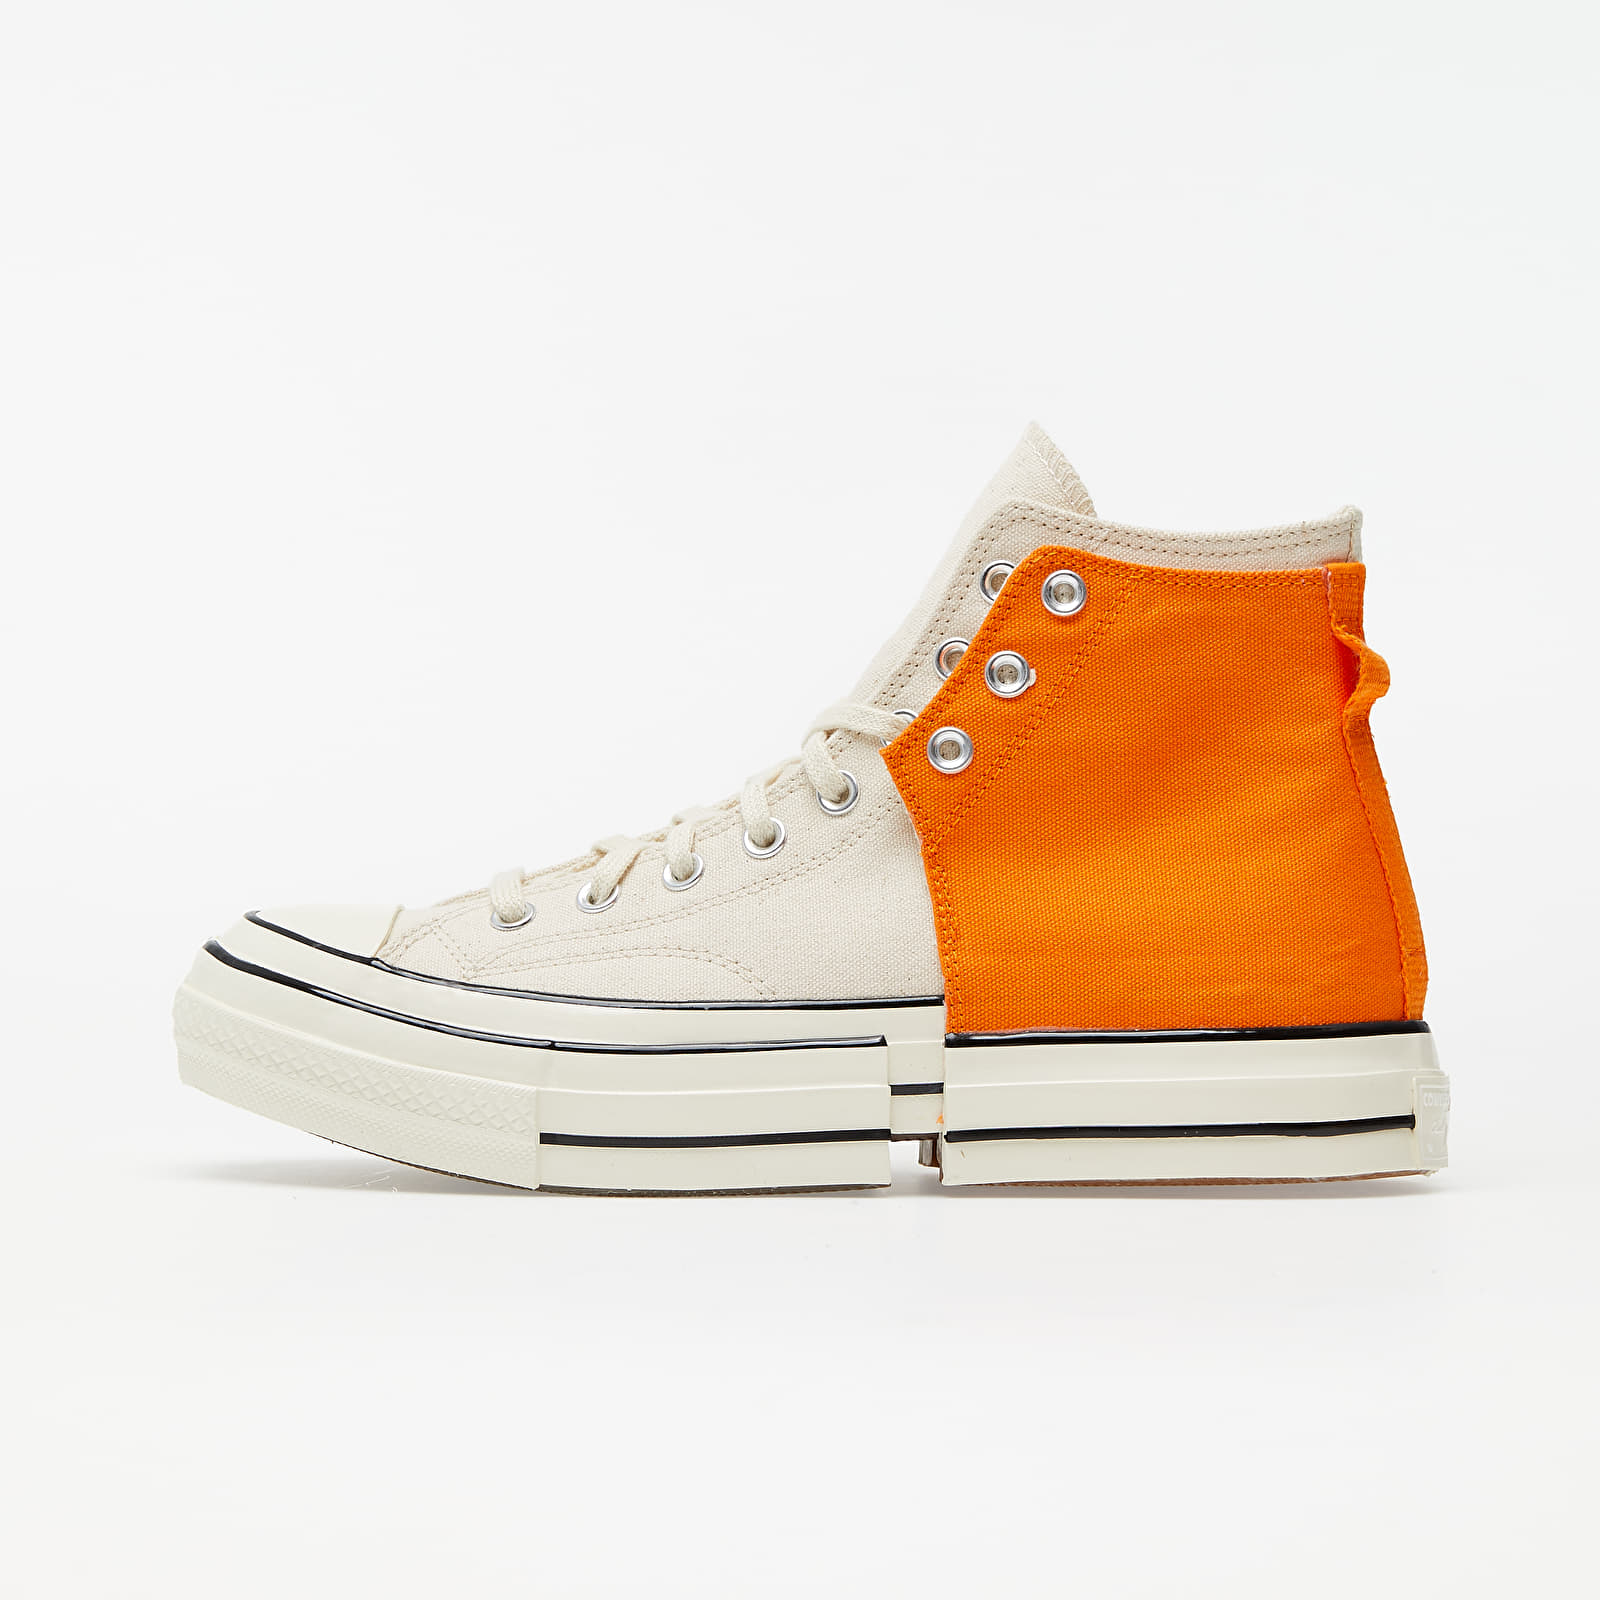 Men's shoes Converse x Feng Chen Wang Chuck 70 2 in 1 Persimmon Orange/ Natural Ivory